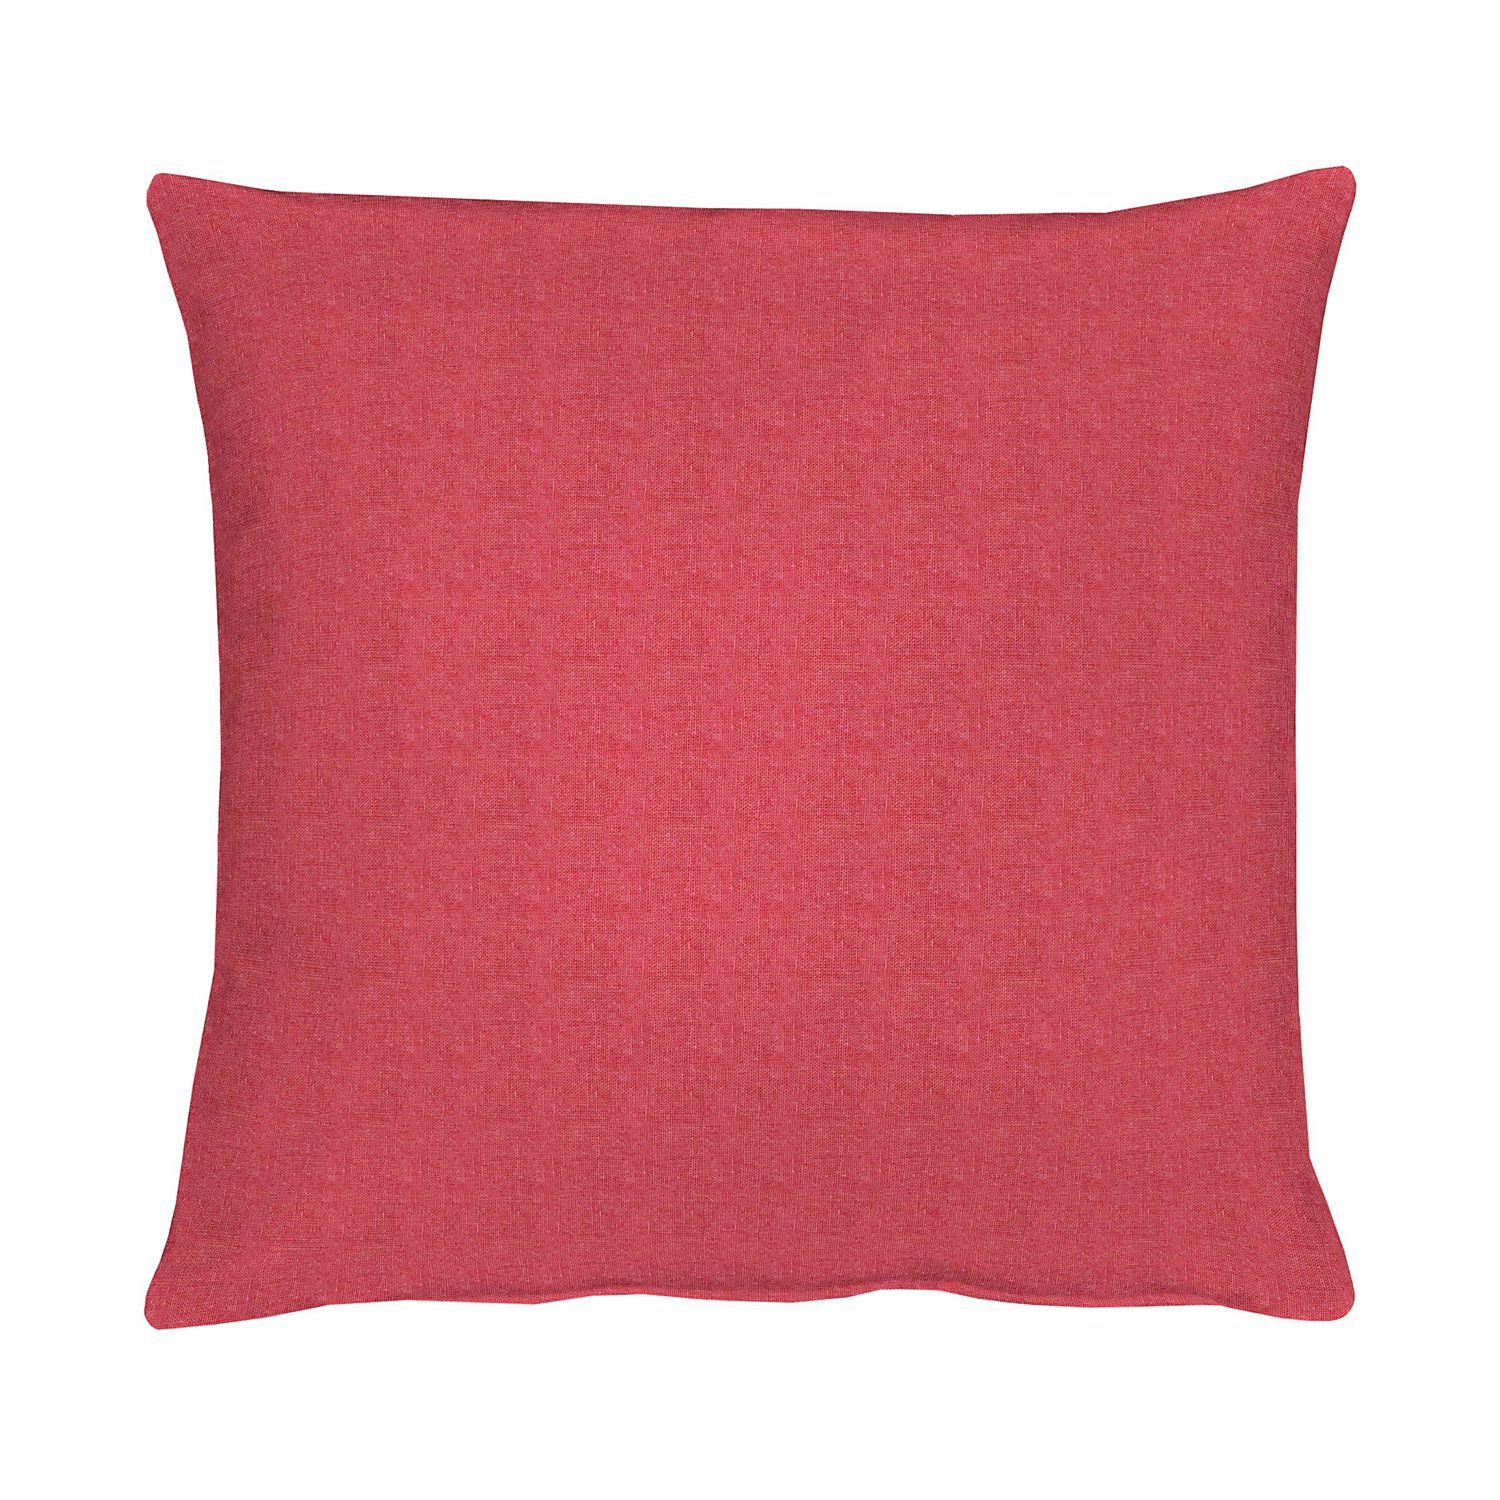 Home 24 - Coussin tosca - rouge / turquoise, apelt